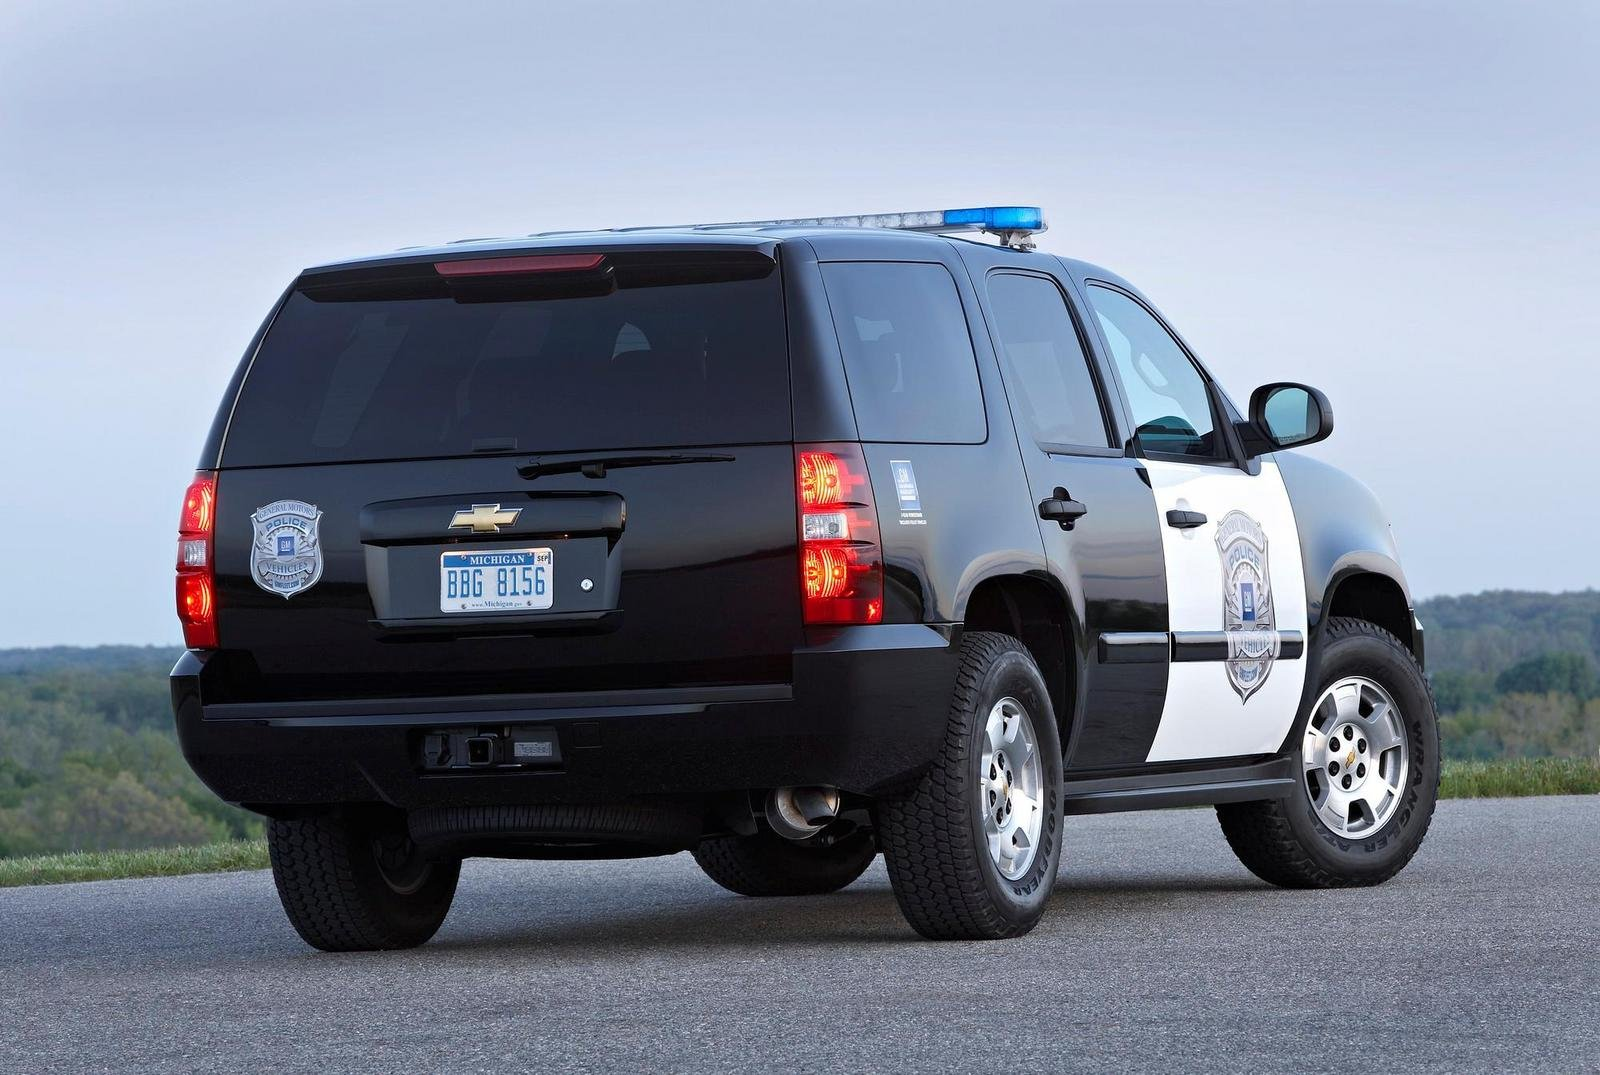 2010 chevrolet tahoe police picture 345646 car review top speed. Black Bedroom Furniture Sets. Home Design Ideas